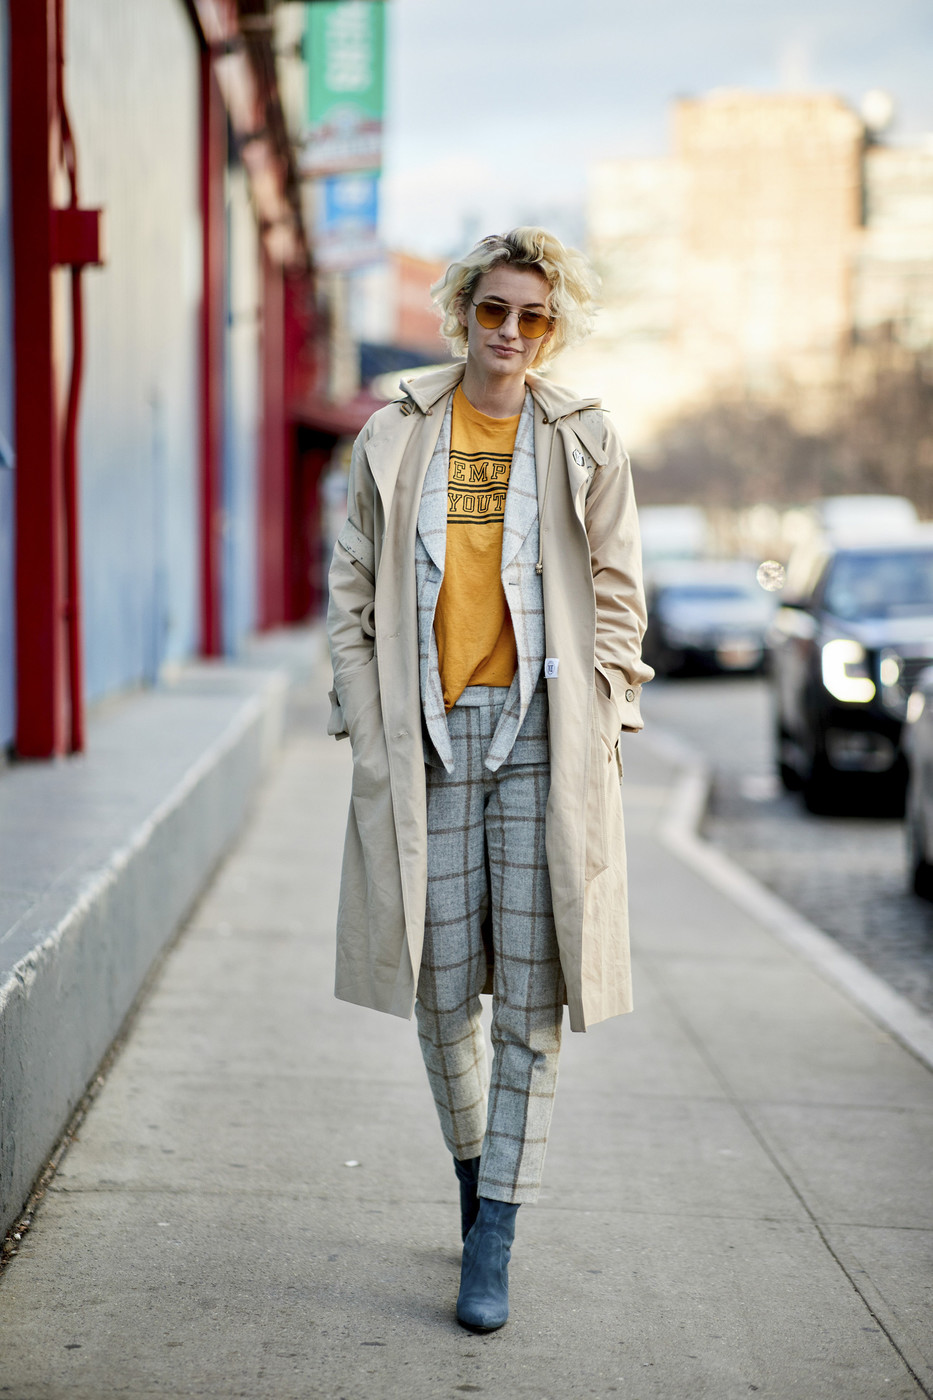 Grunge Chic Creative Winter Outfit Ideas From Nyfw